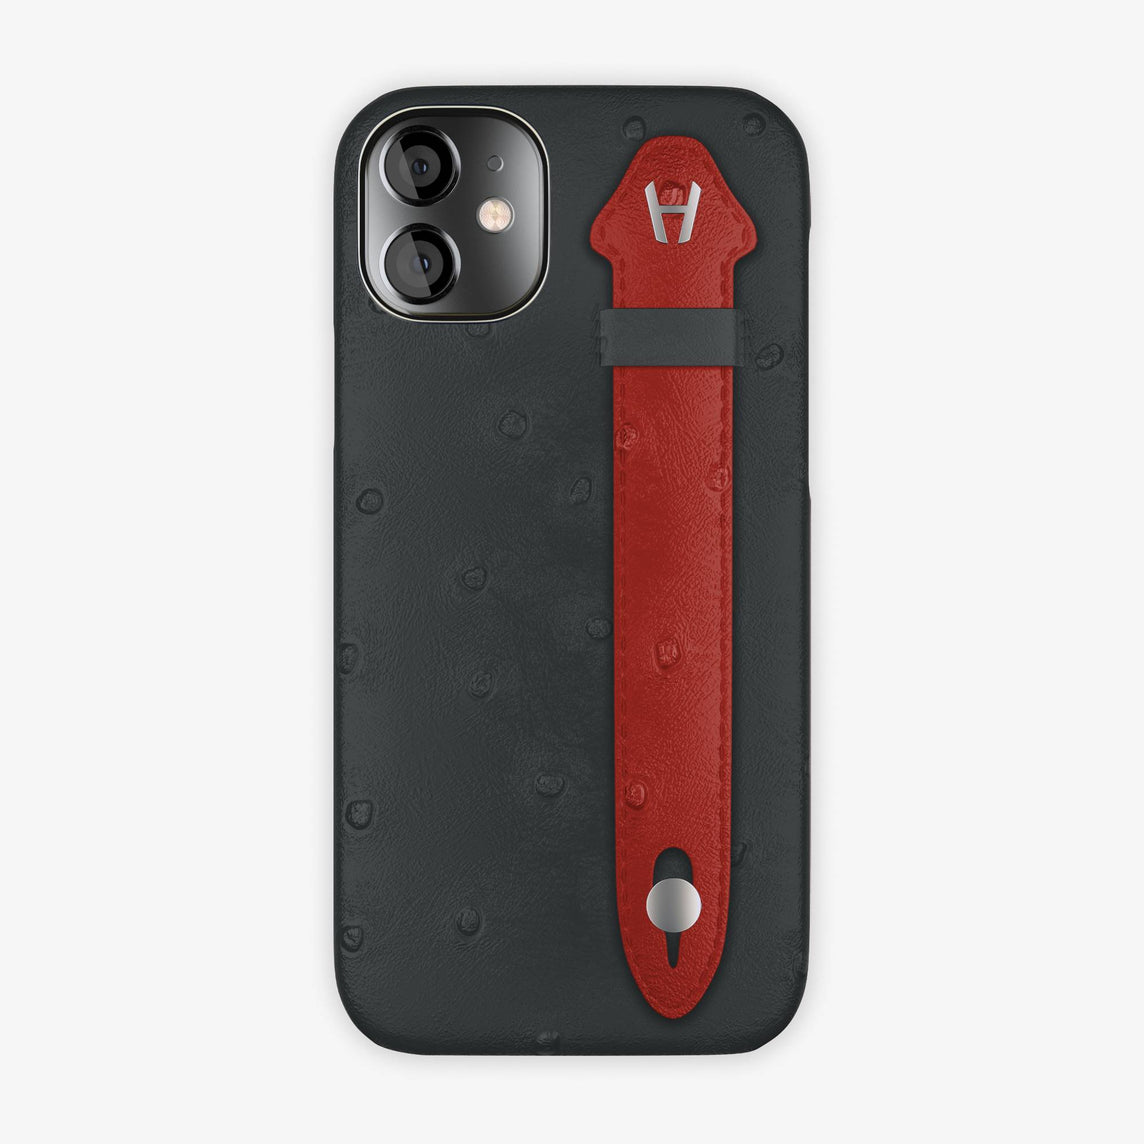 Ostrich Side Finger Case iPhone 12 Mini | Anthracite/Red - Stainless Steel